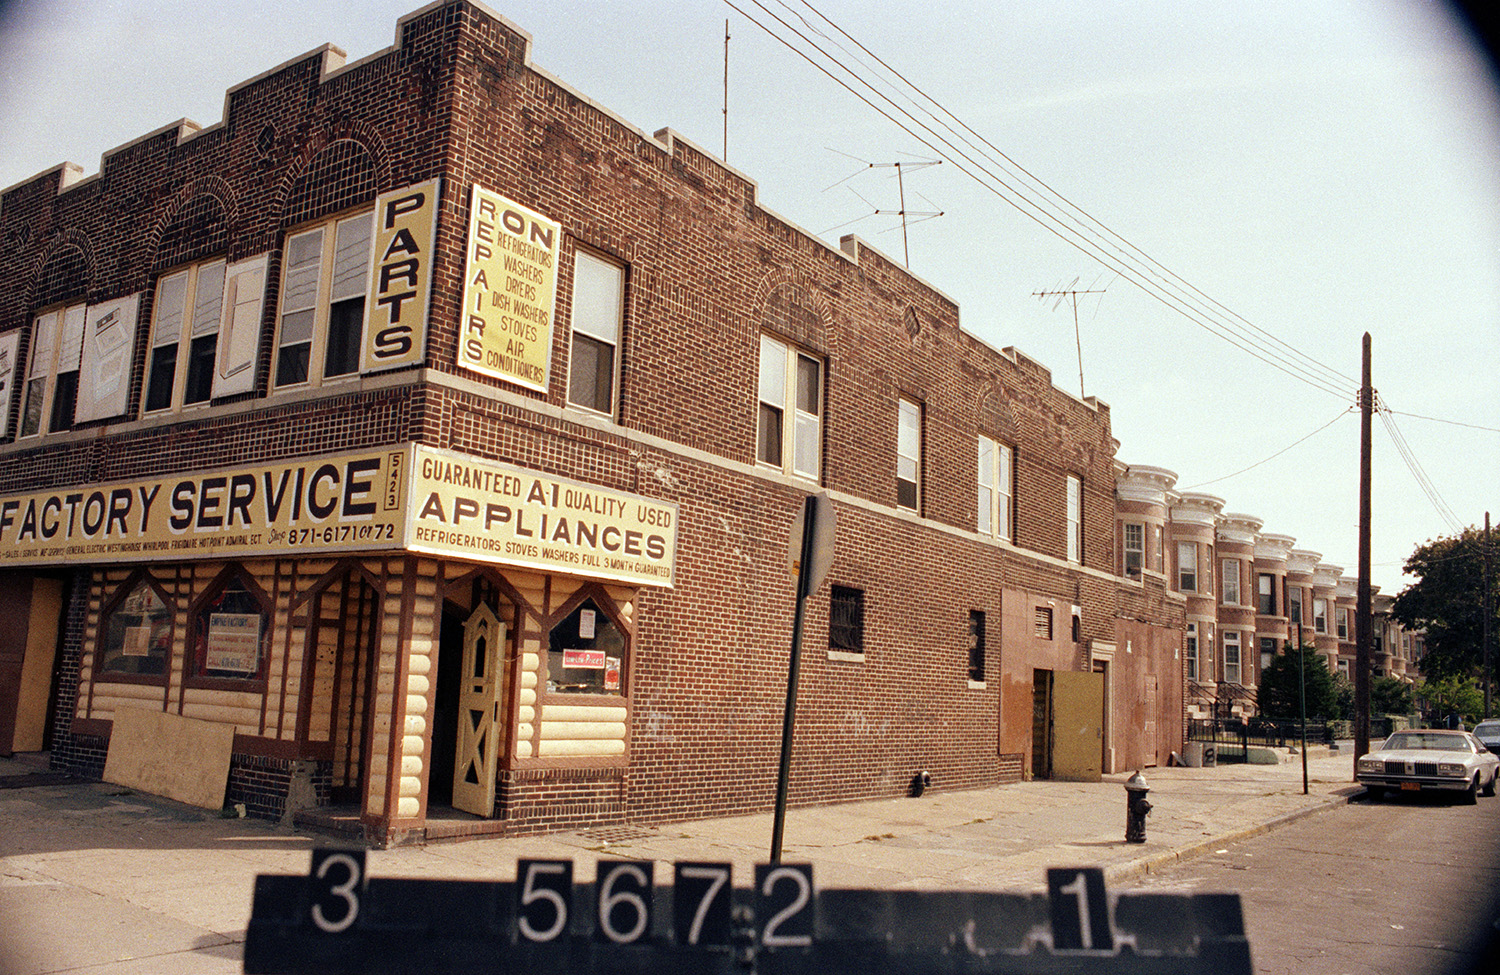 5423 8th Ave. (at 54th St.), Brooklyn, 1983-1988. NYC Municipal Archives.